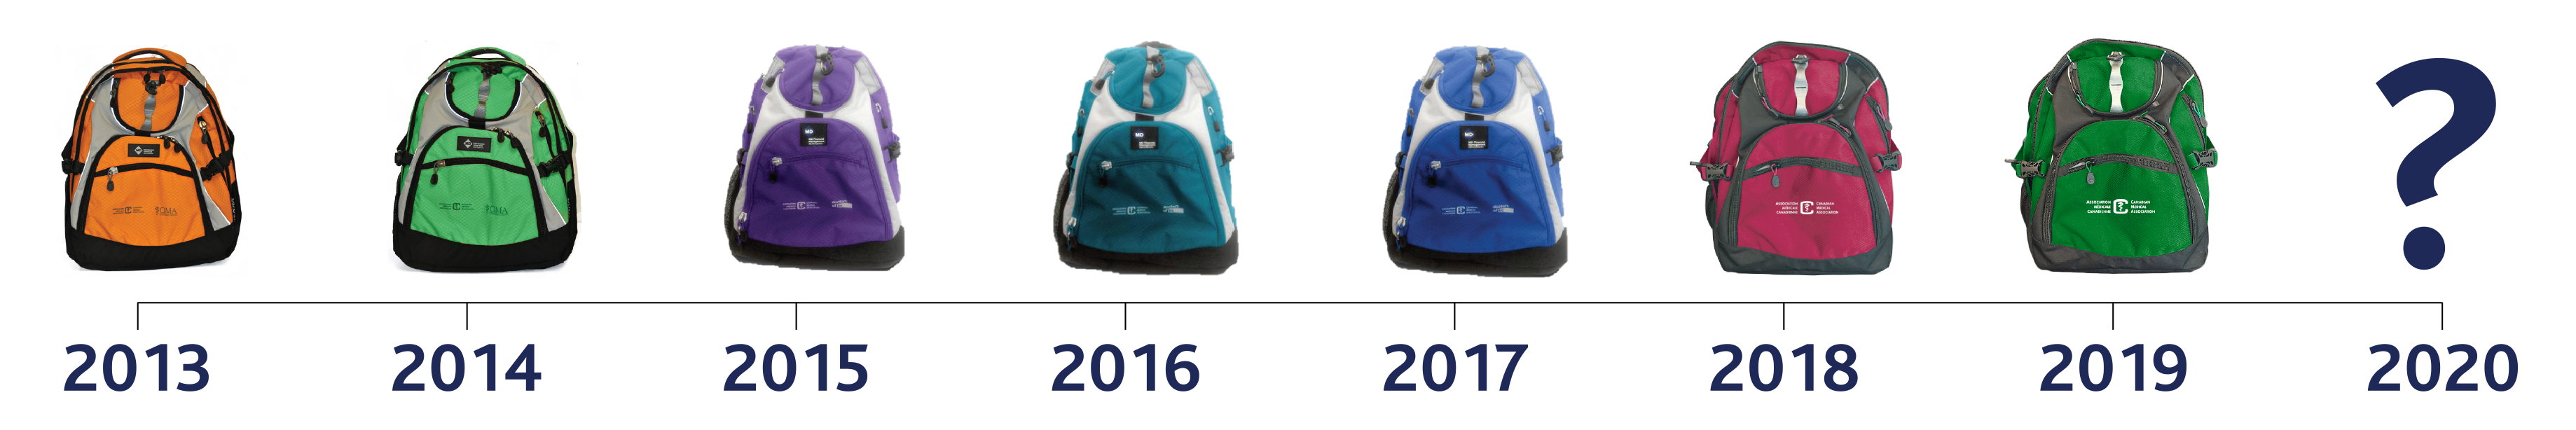 CMA backpack timeline